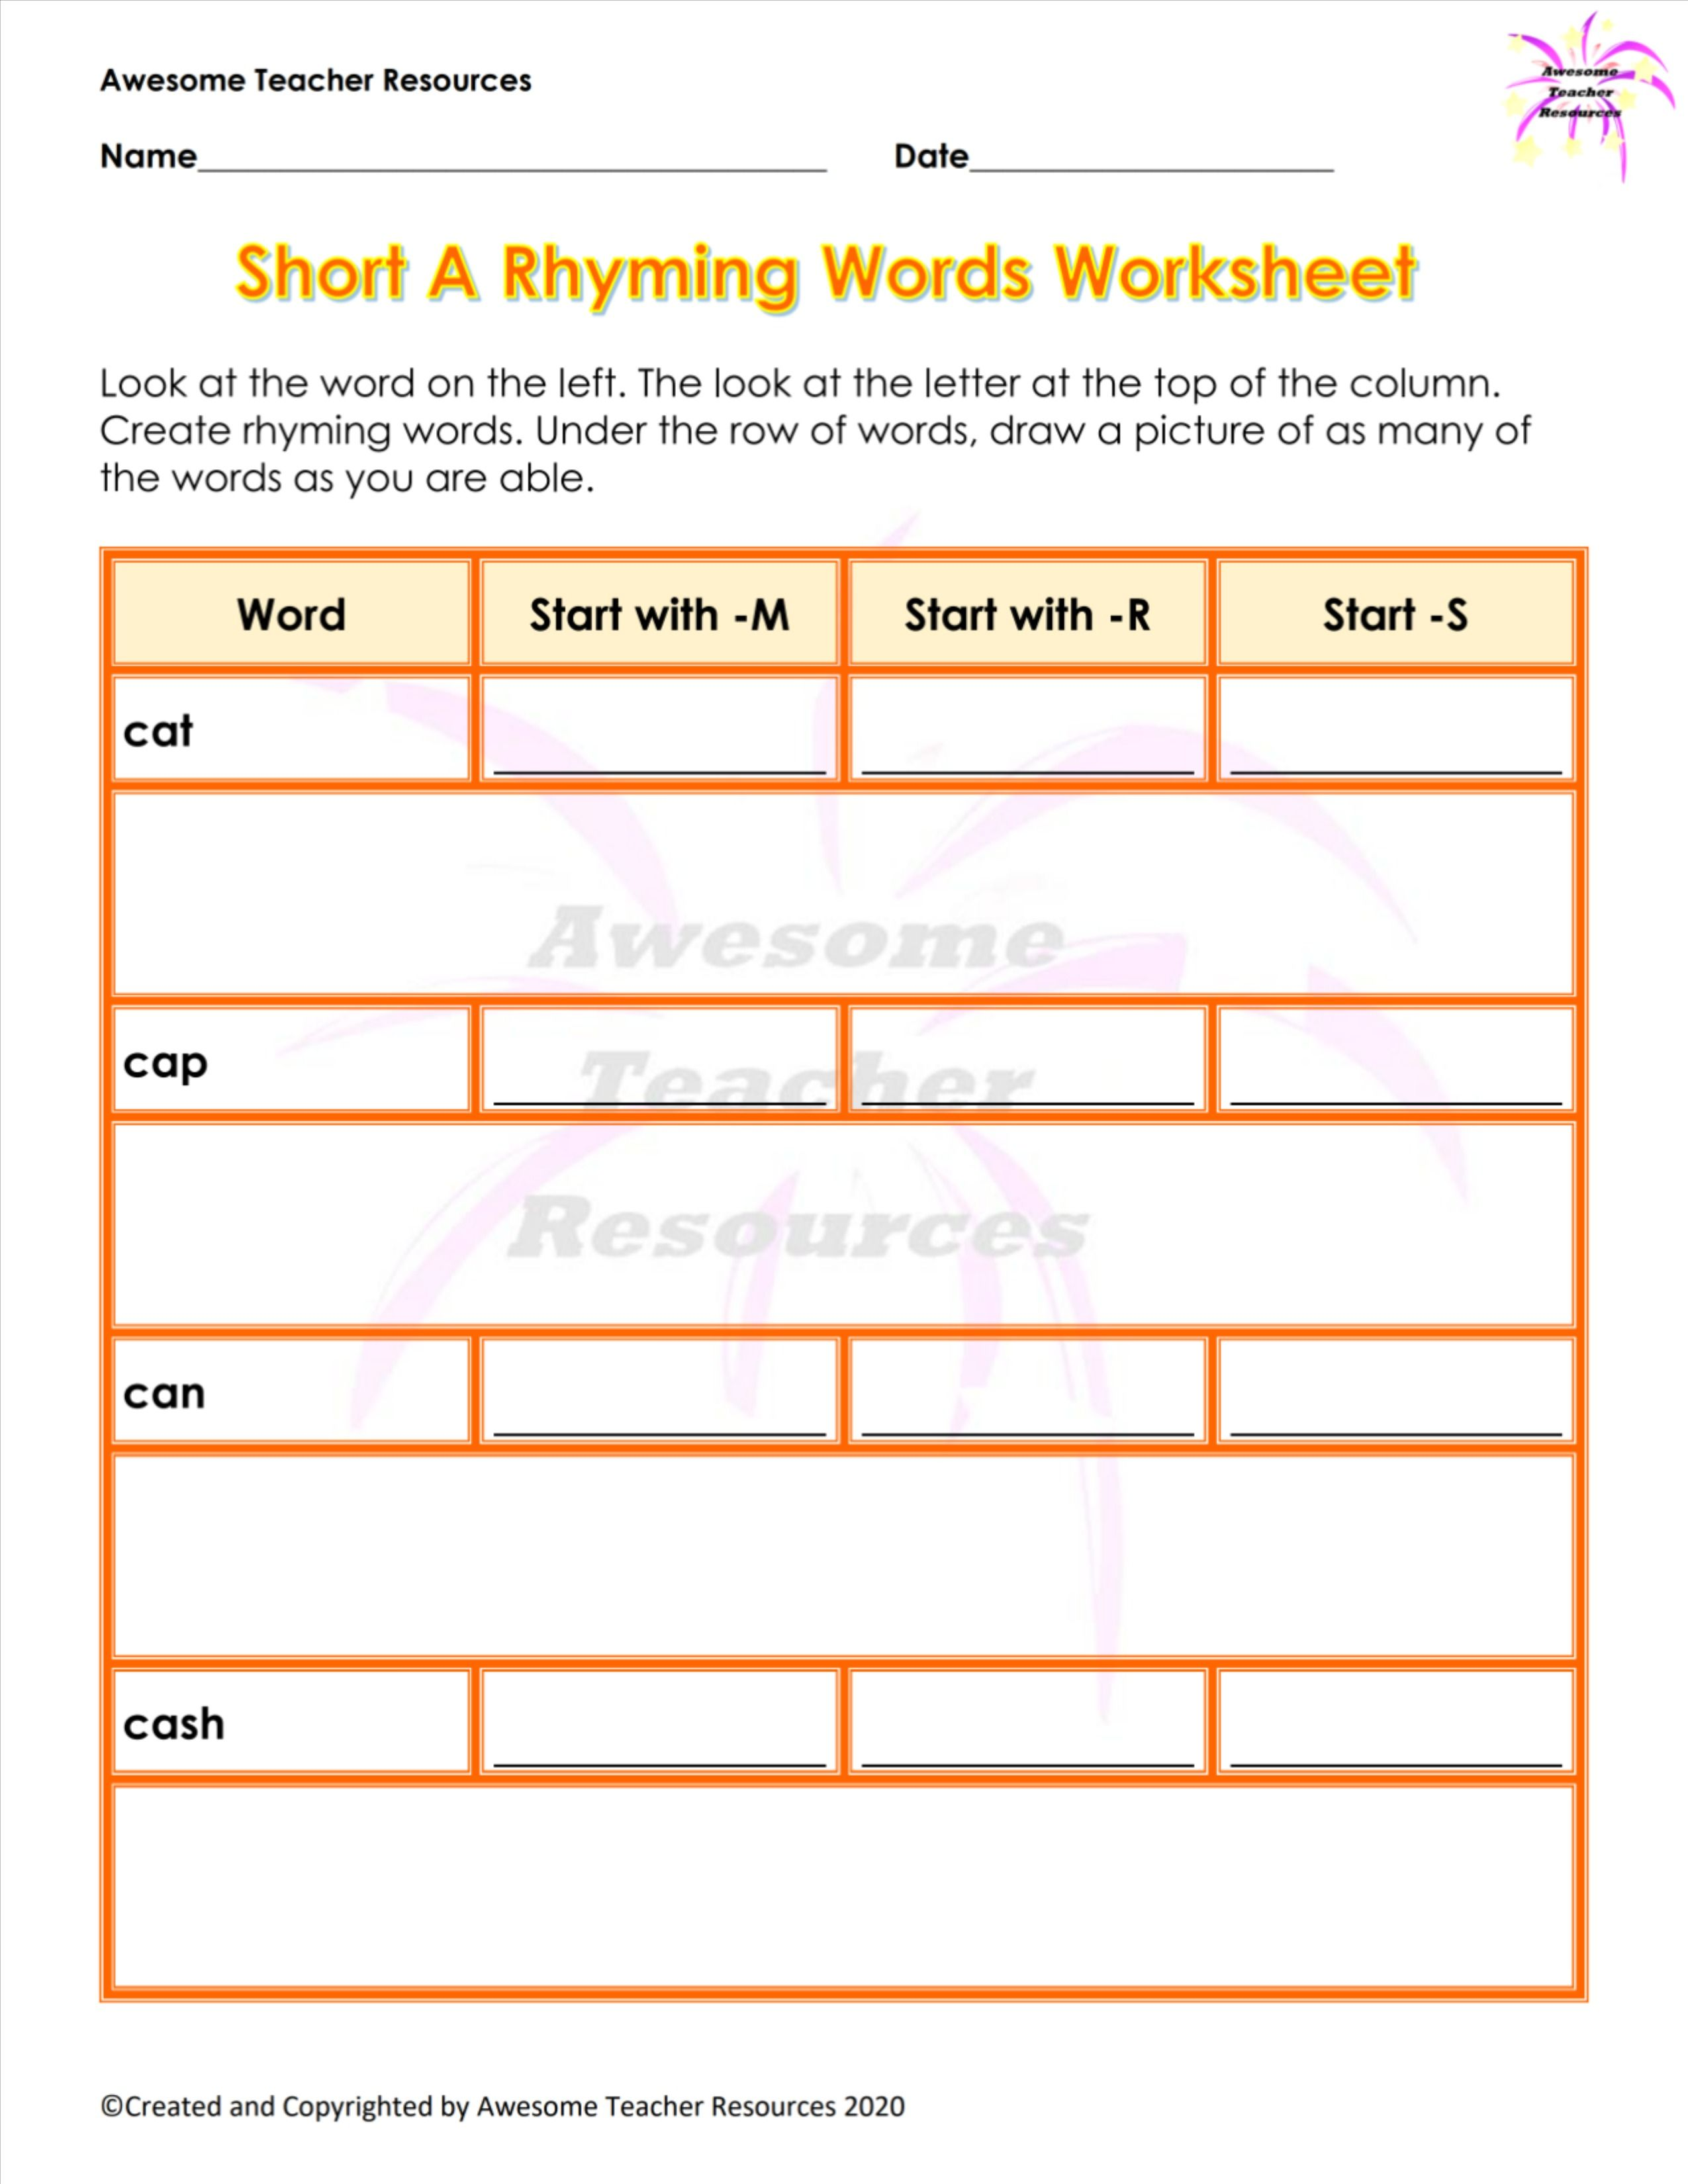 Short A Rhyming Words Worksheet In